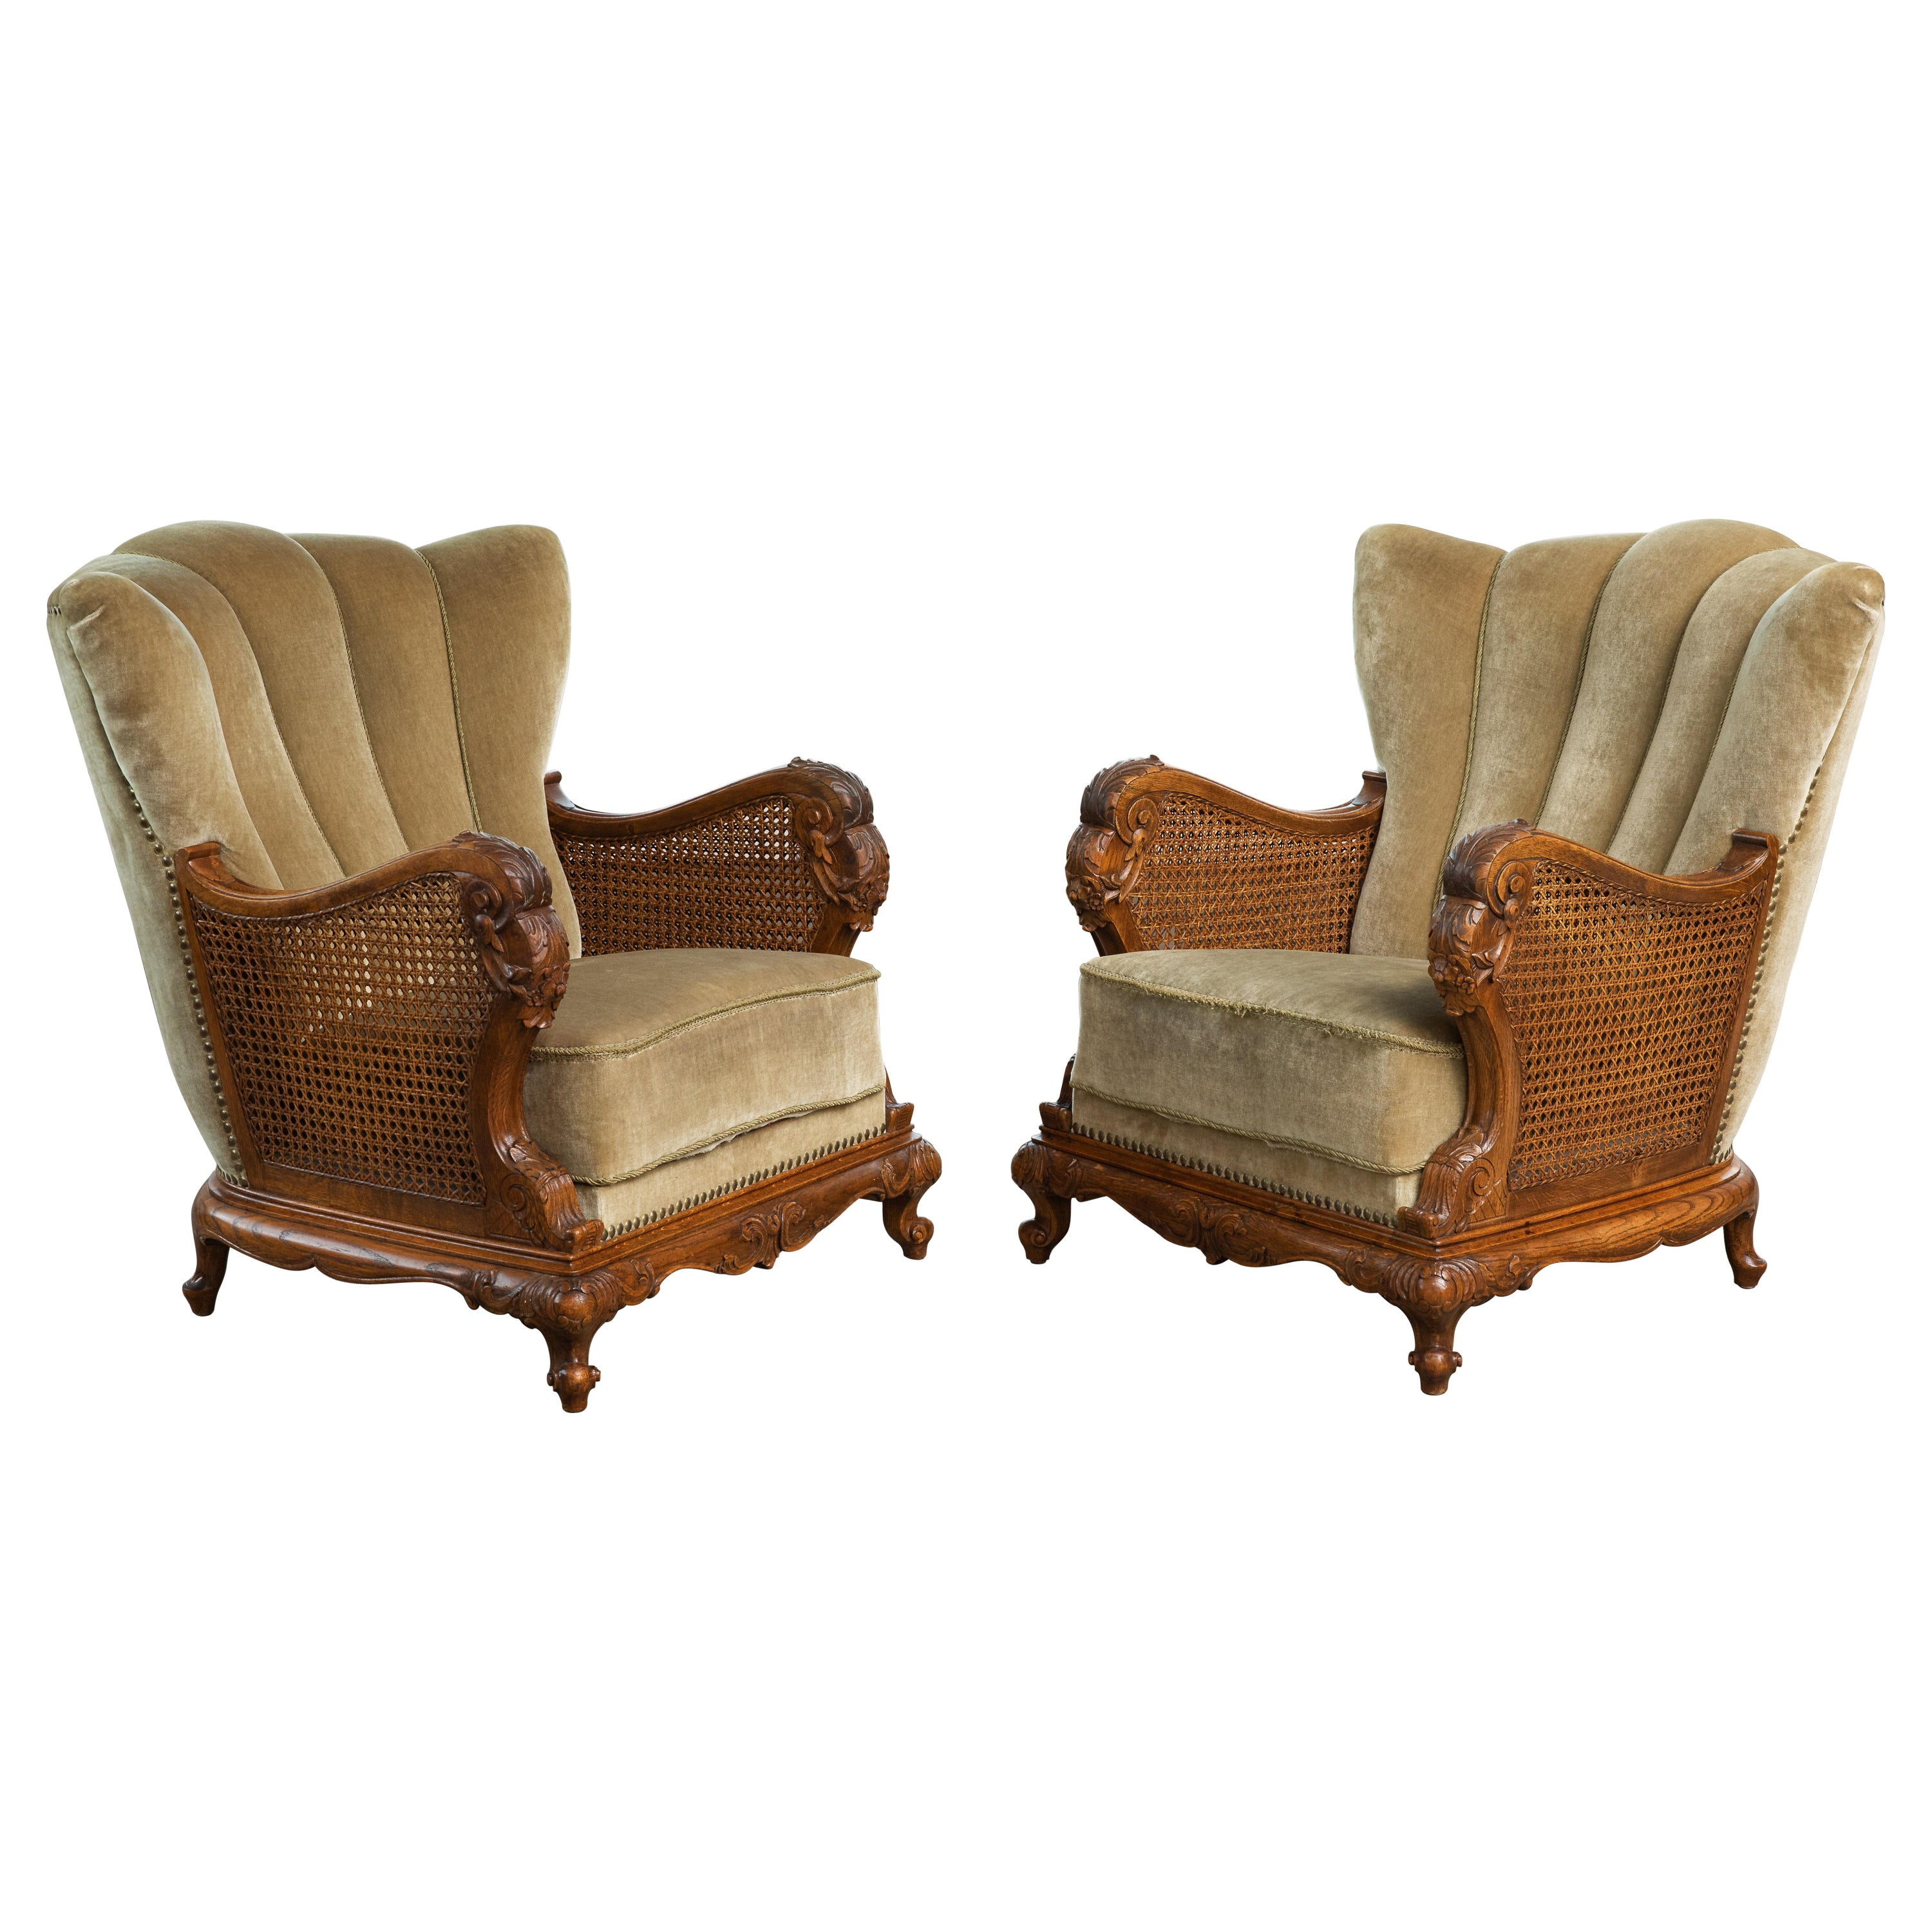 Pair of Danish Early 20th Century Caned Bergère Lounge Chairs in Oak and Mohair